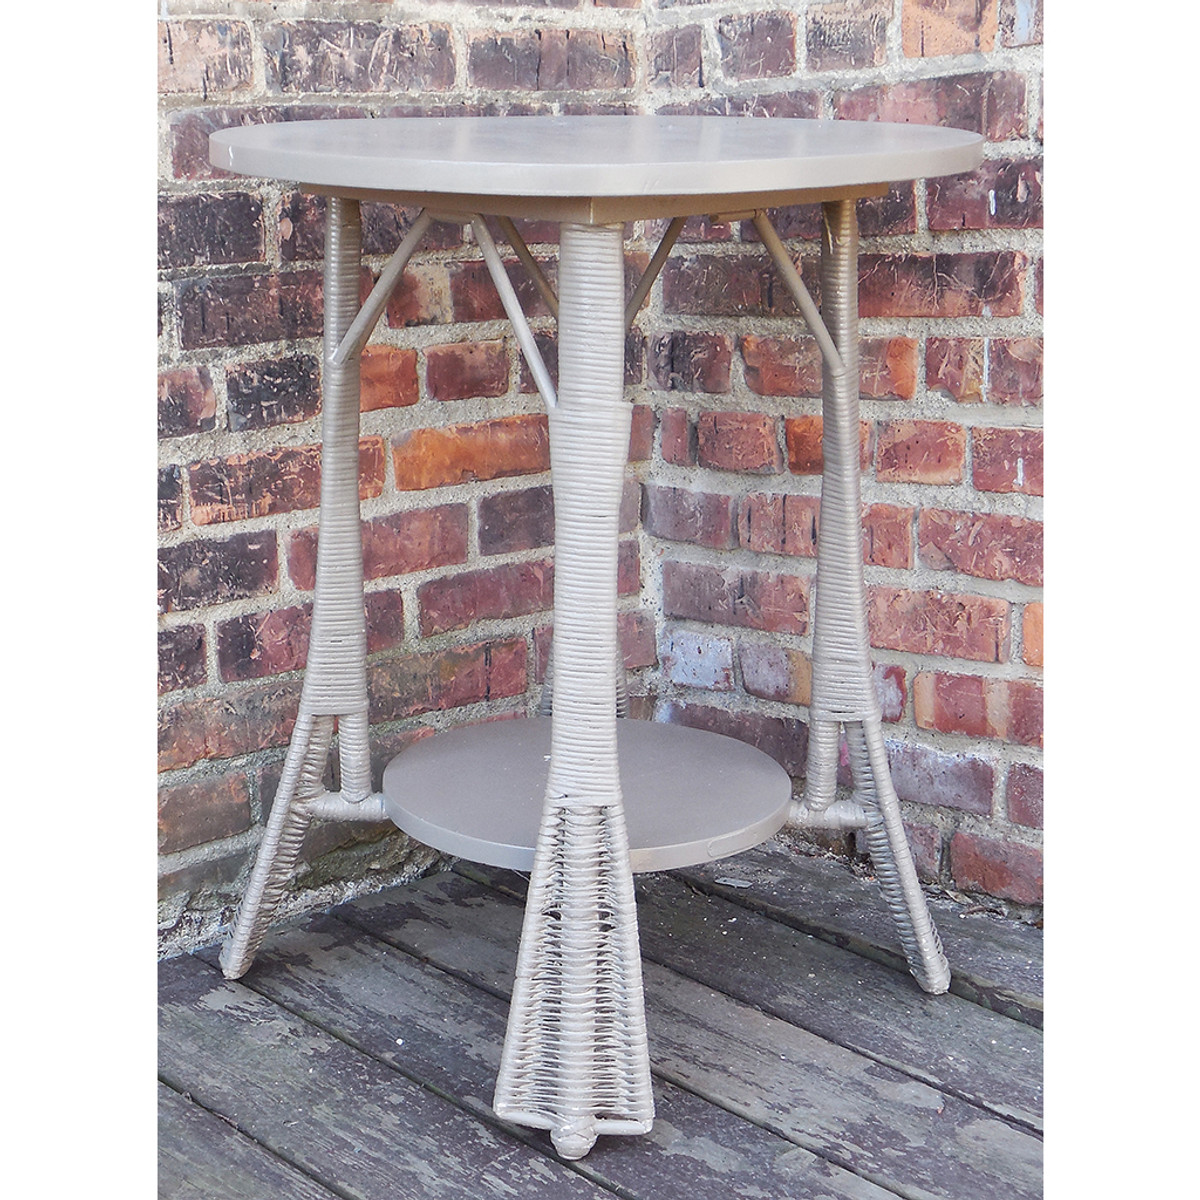 F14033 - Antique Arts and Crafts Wicker Side Table